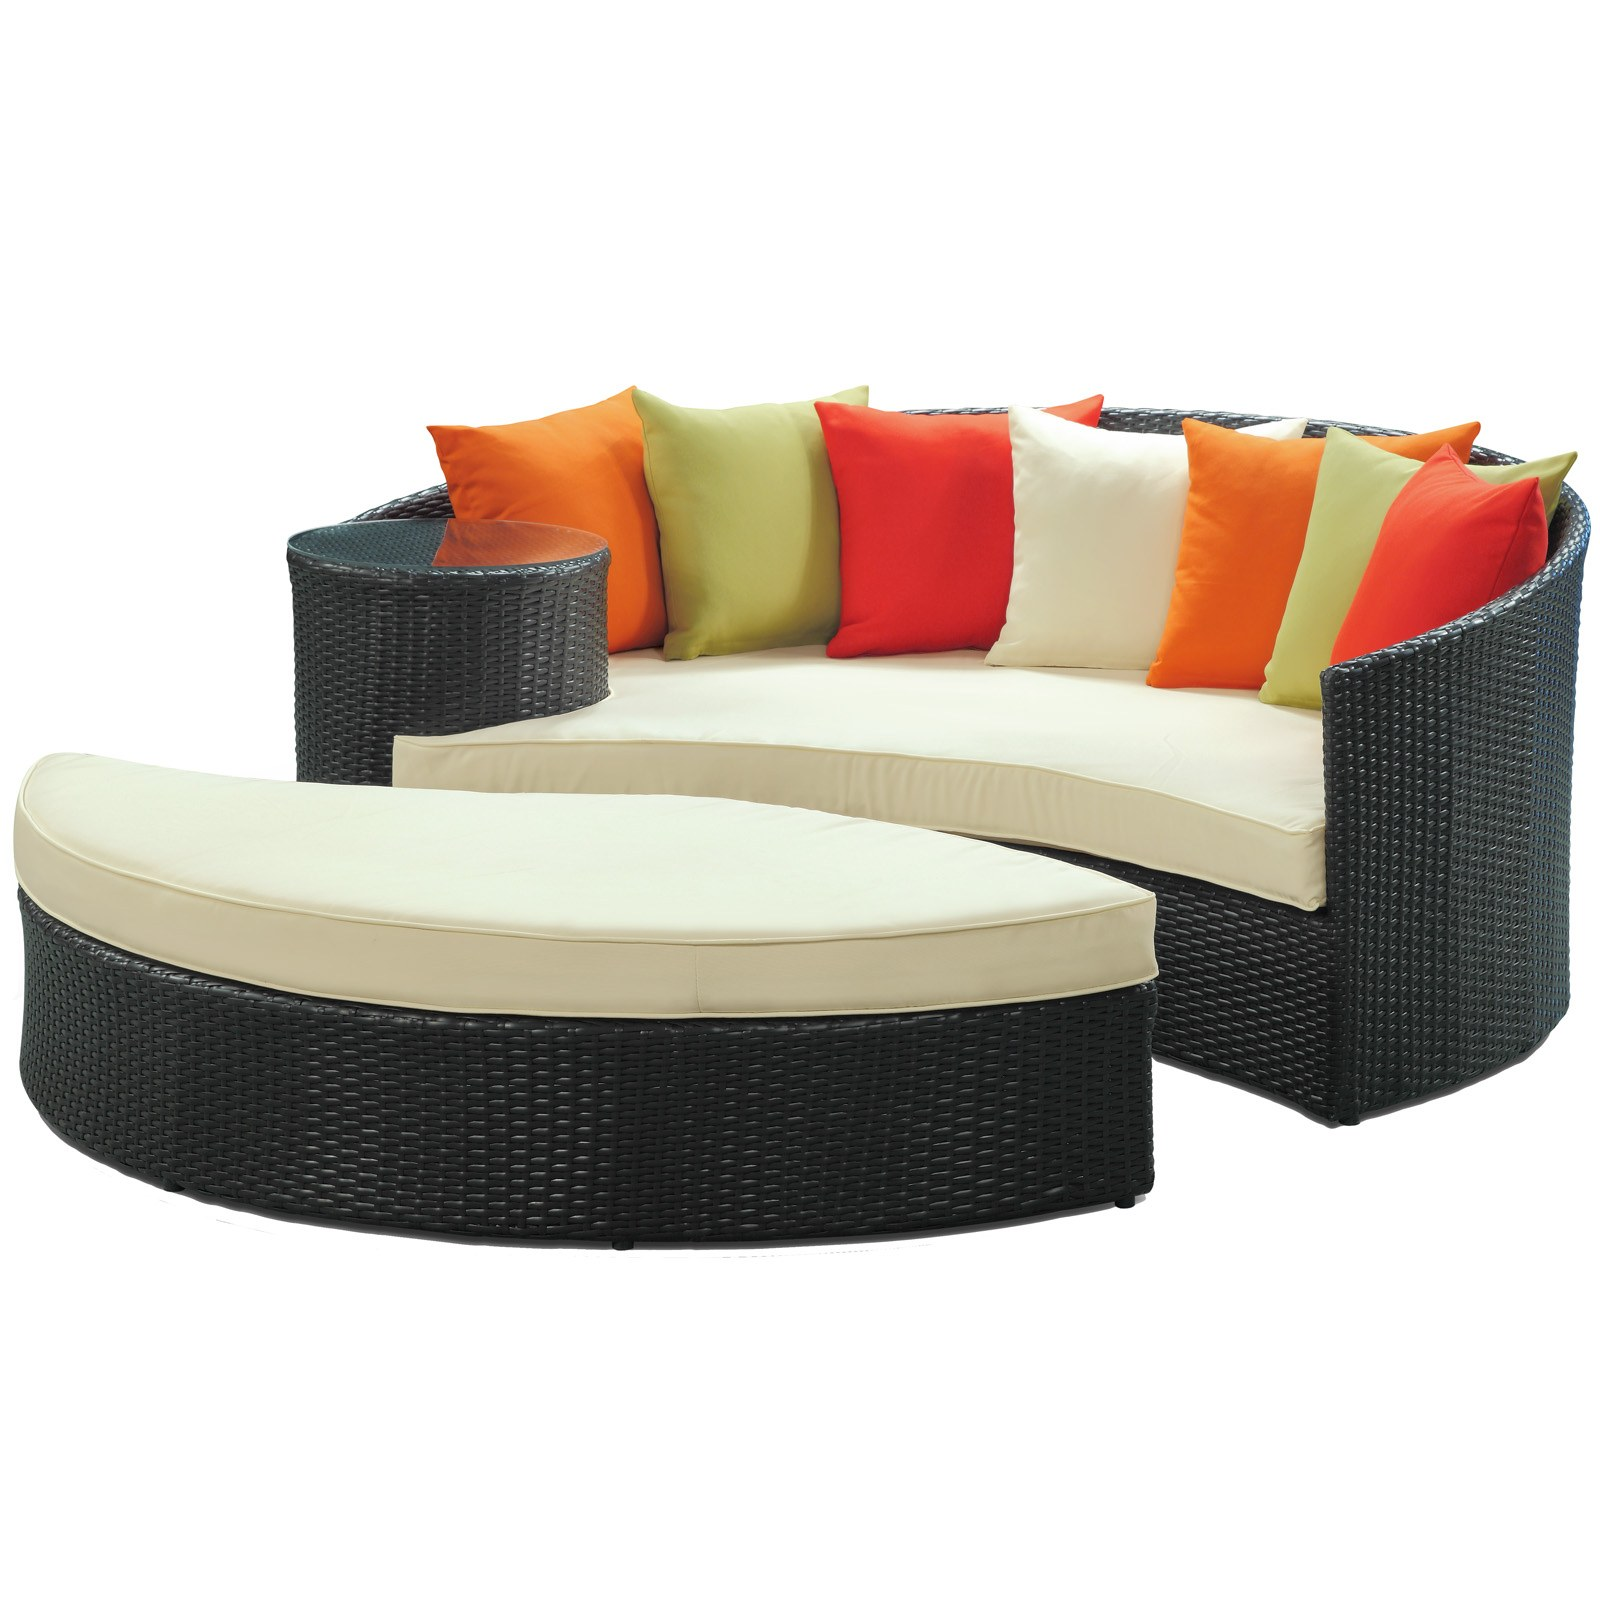 Taiji Outdoor Wicker Patio Daybed with Ottoman in Espresso